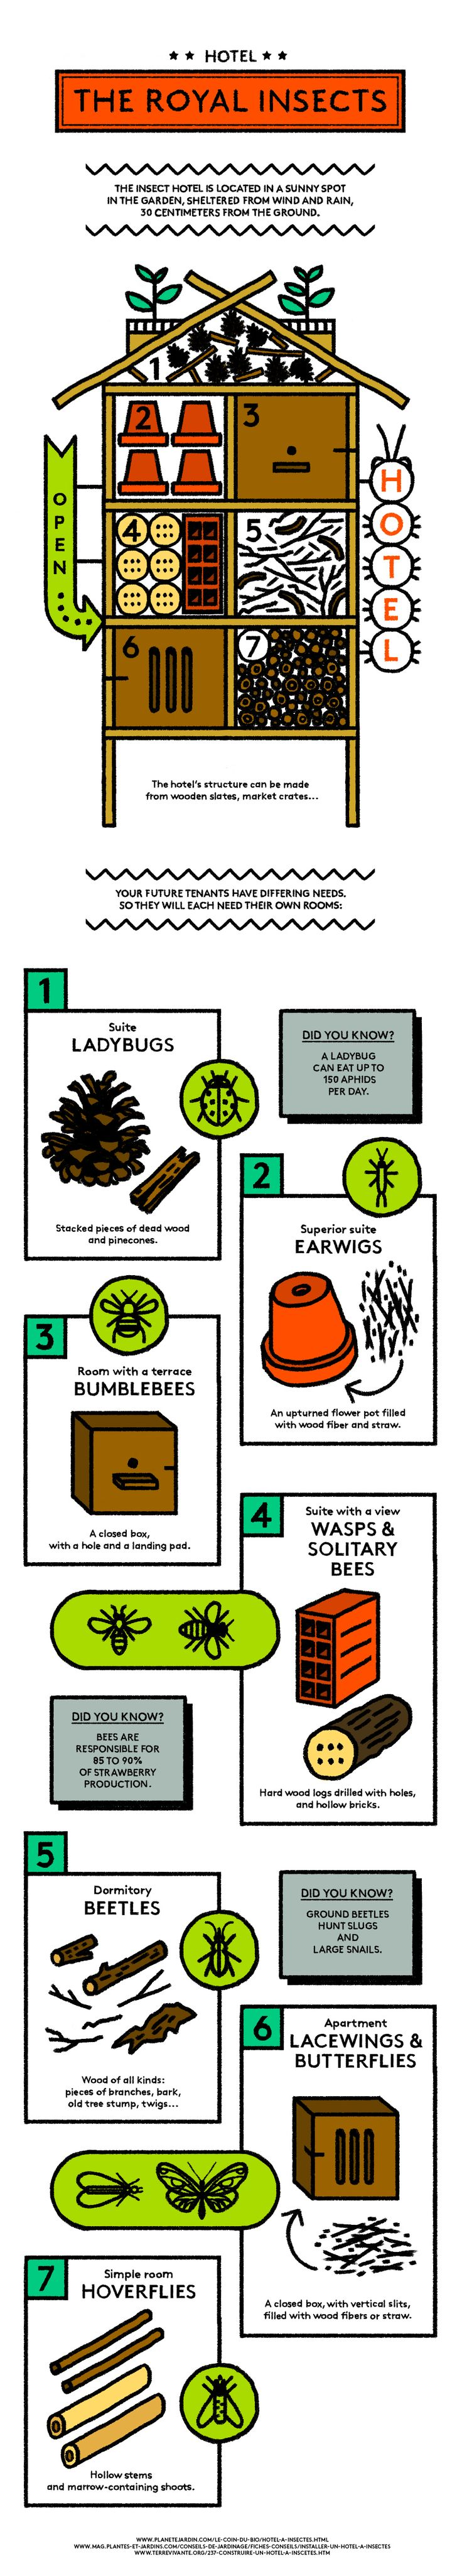 How to build an insect hotel | Living Circular